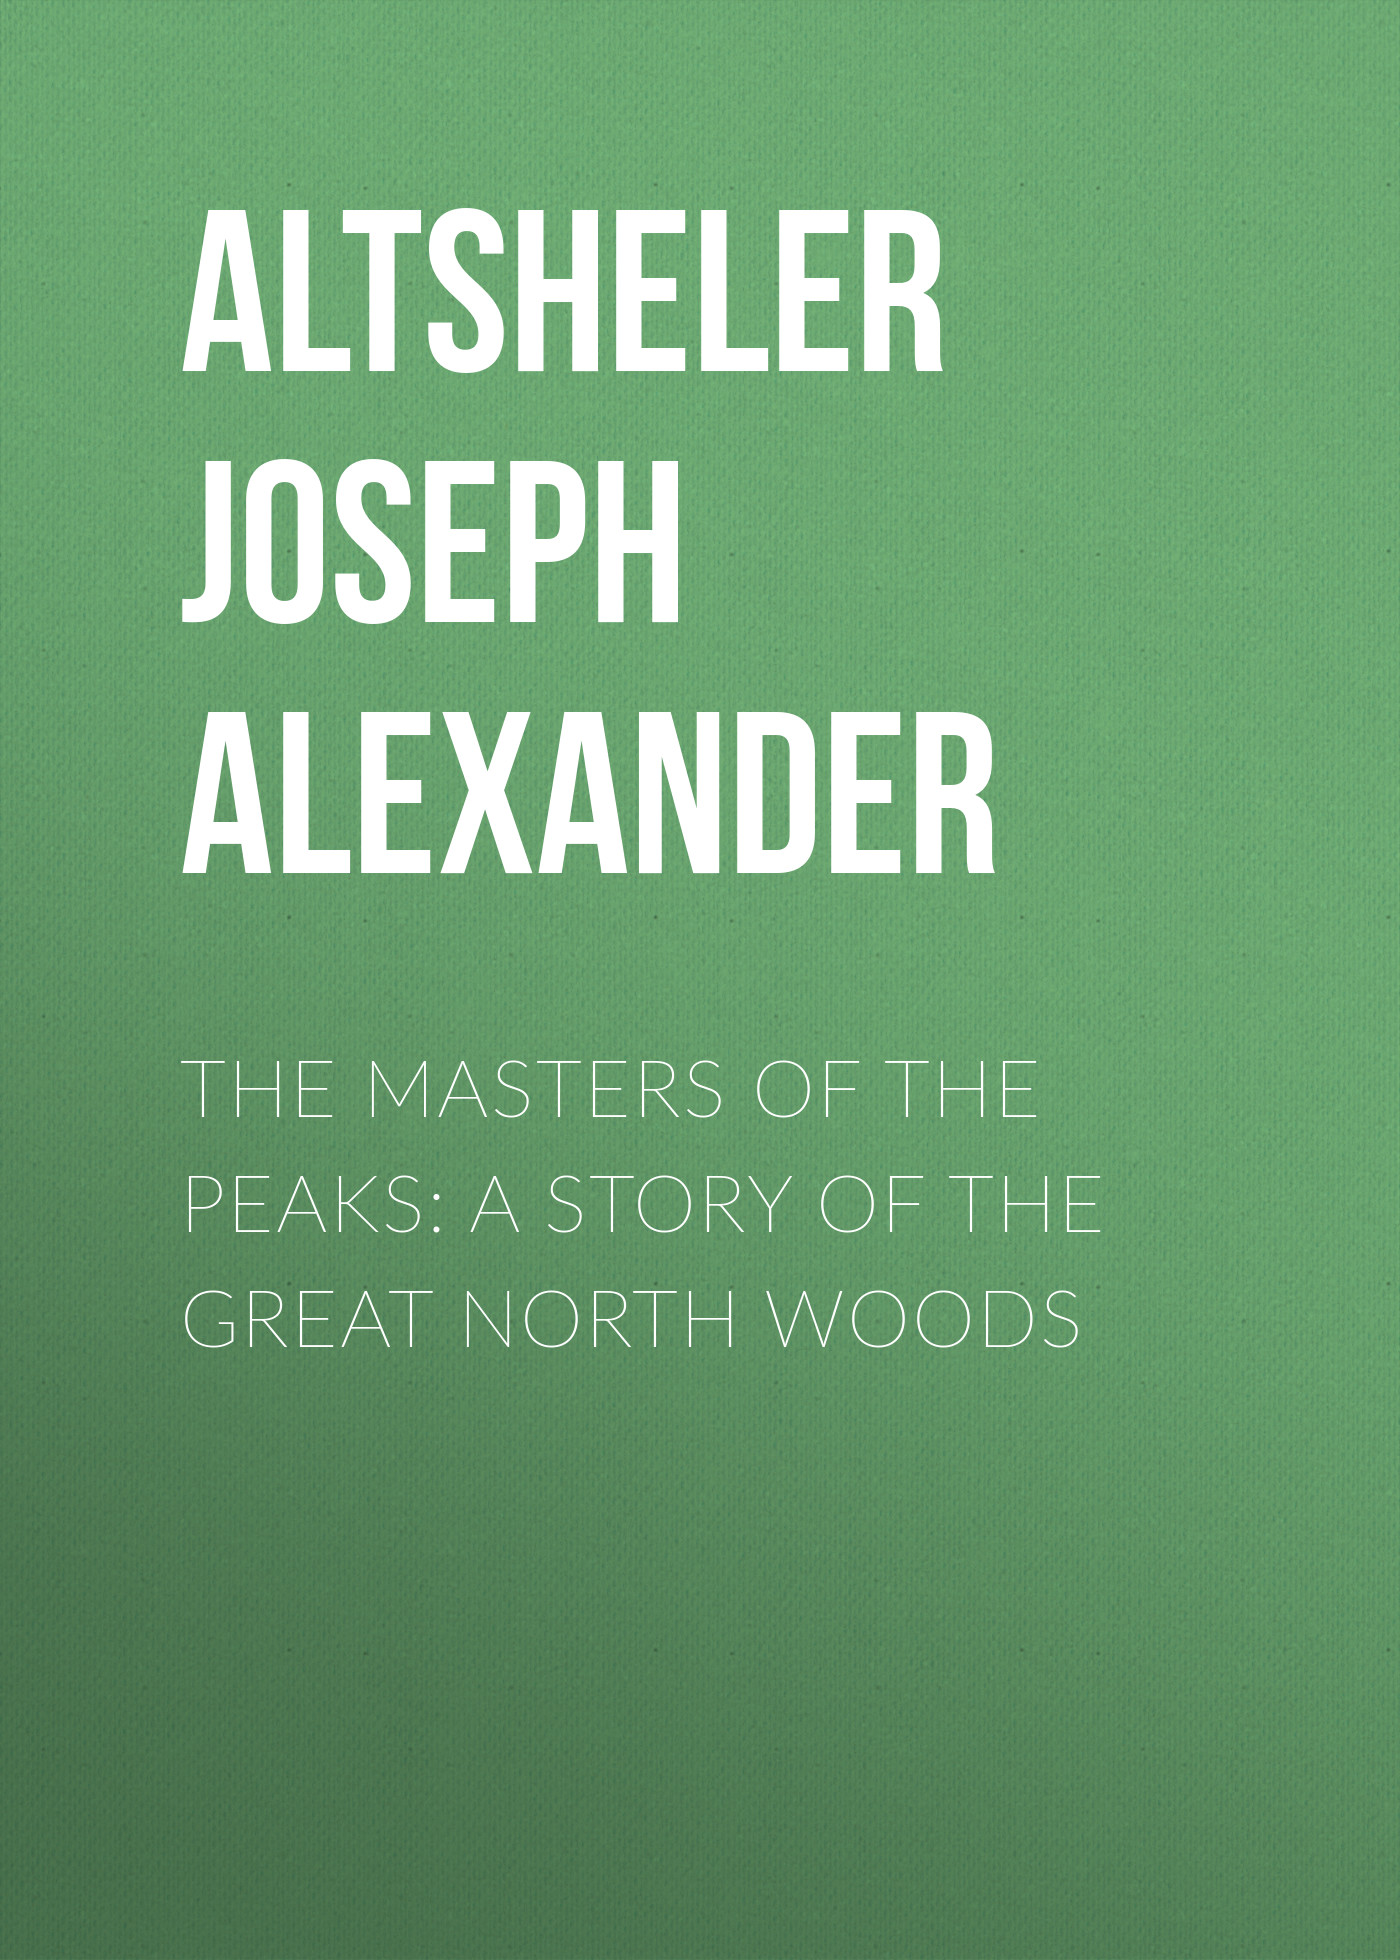 Altsheler Joseph Alexander The Masters of the Peaks: A Story of the Great North Woods paine albert bigelow the lucky piece a tale of the north woods